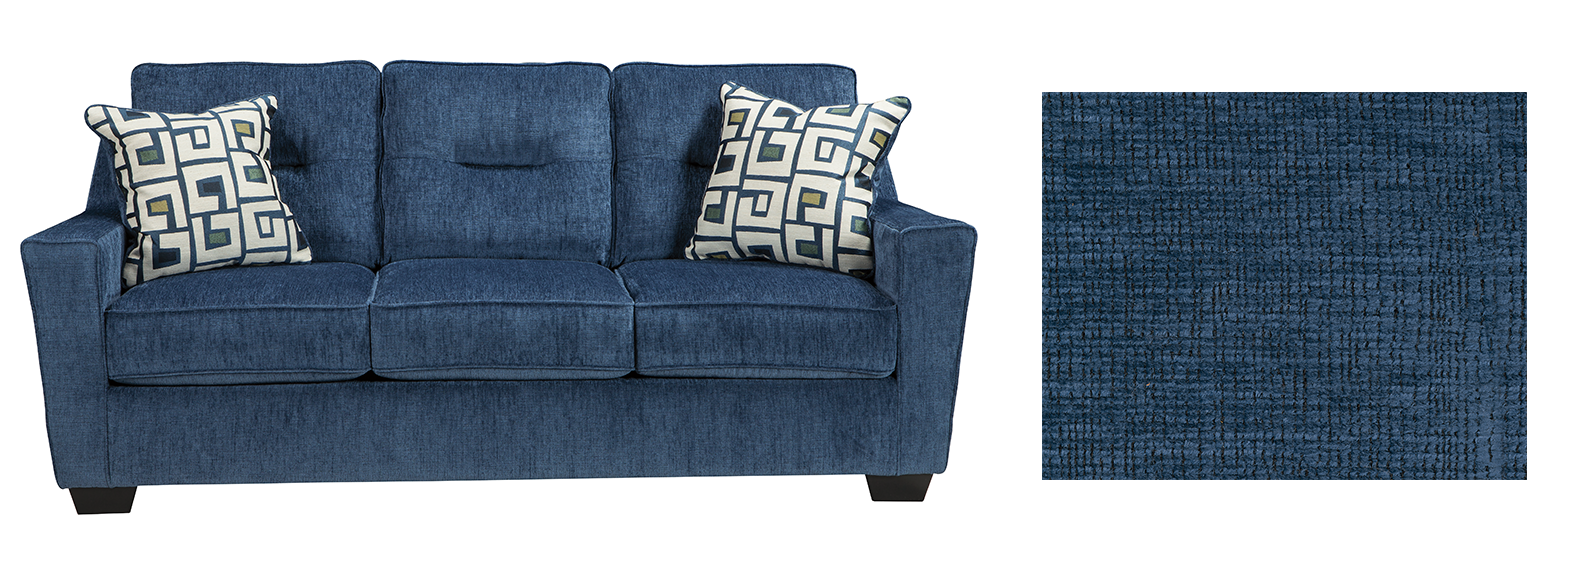 Blue sofa with aztec designed pillows with a fabric splotch next to it.